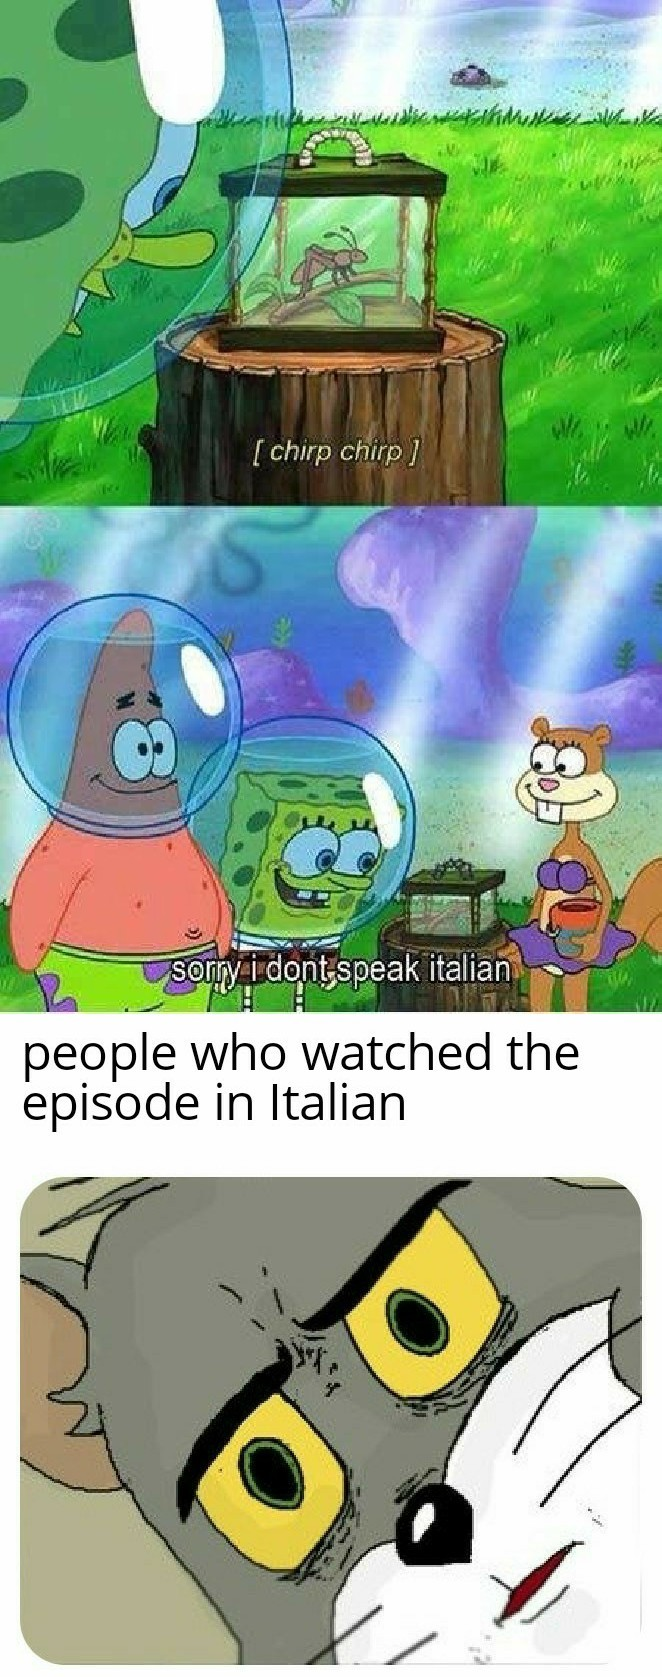 Sorry I don't speak Italian - meme